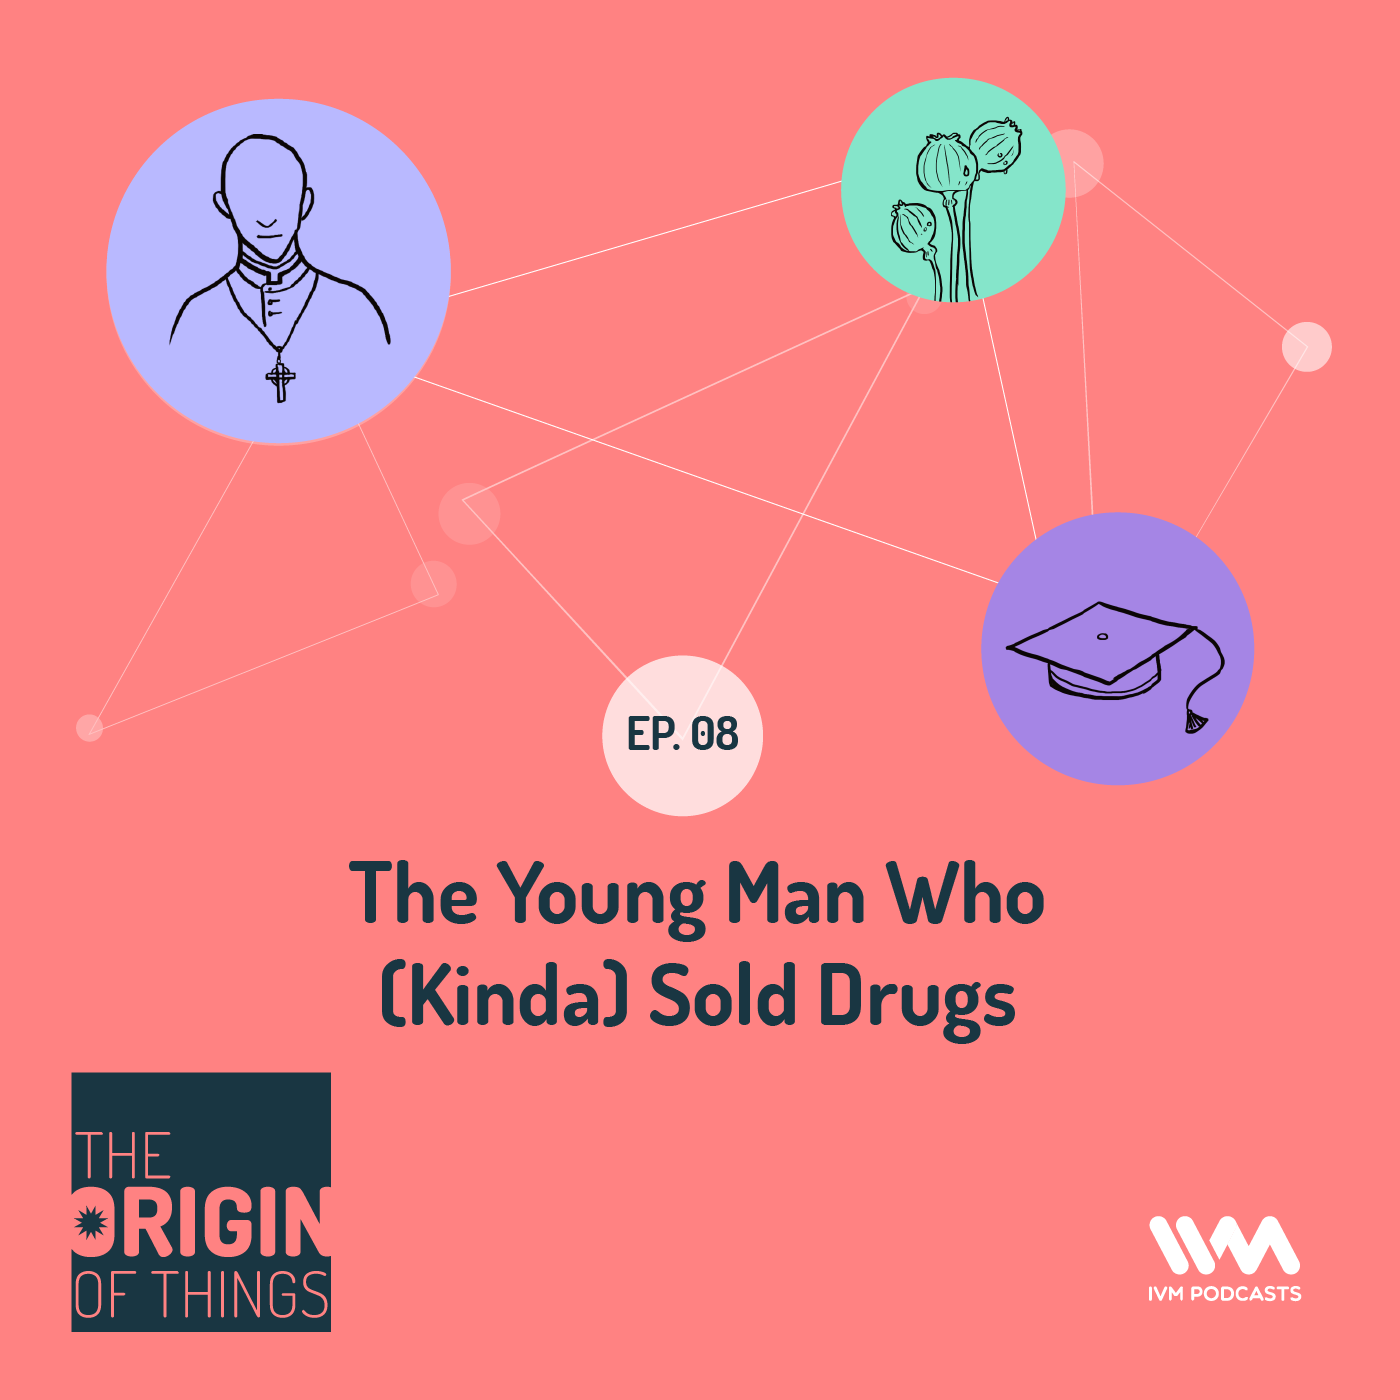 Ep. 08: The Young Man Who (Kinda) Sold Drugs